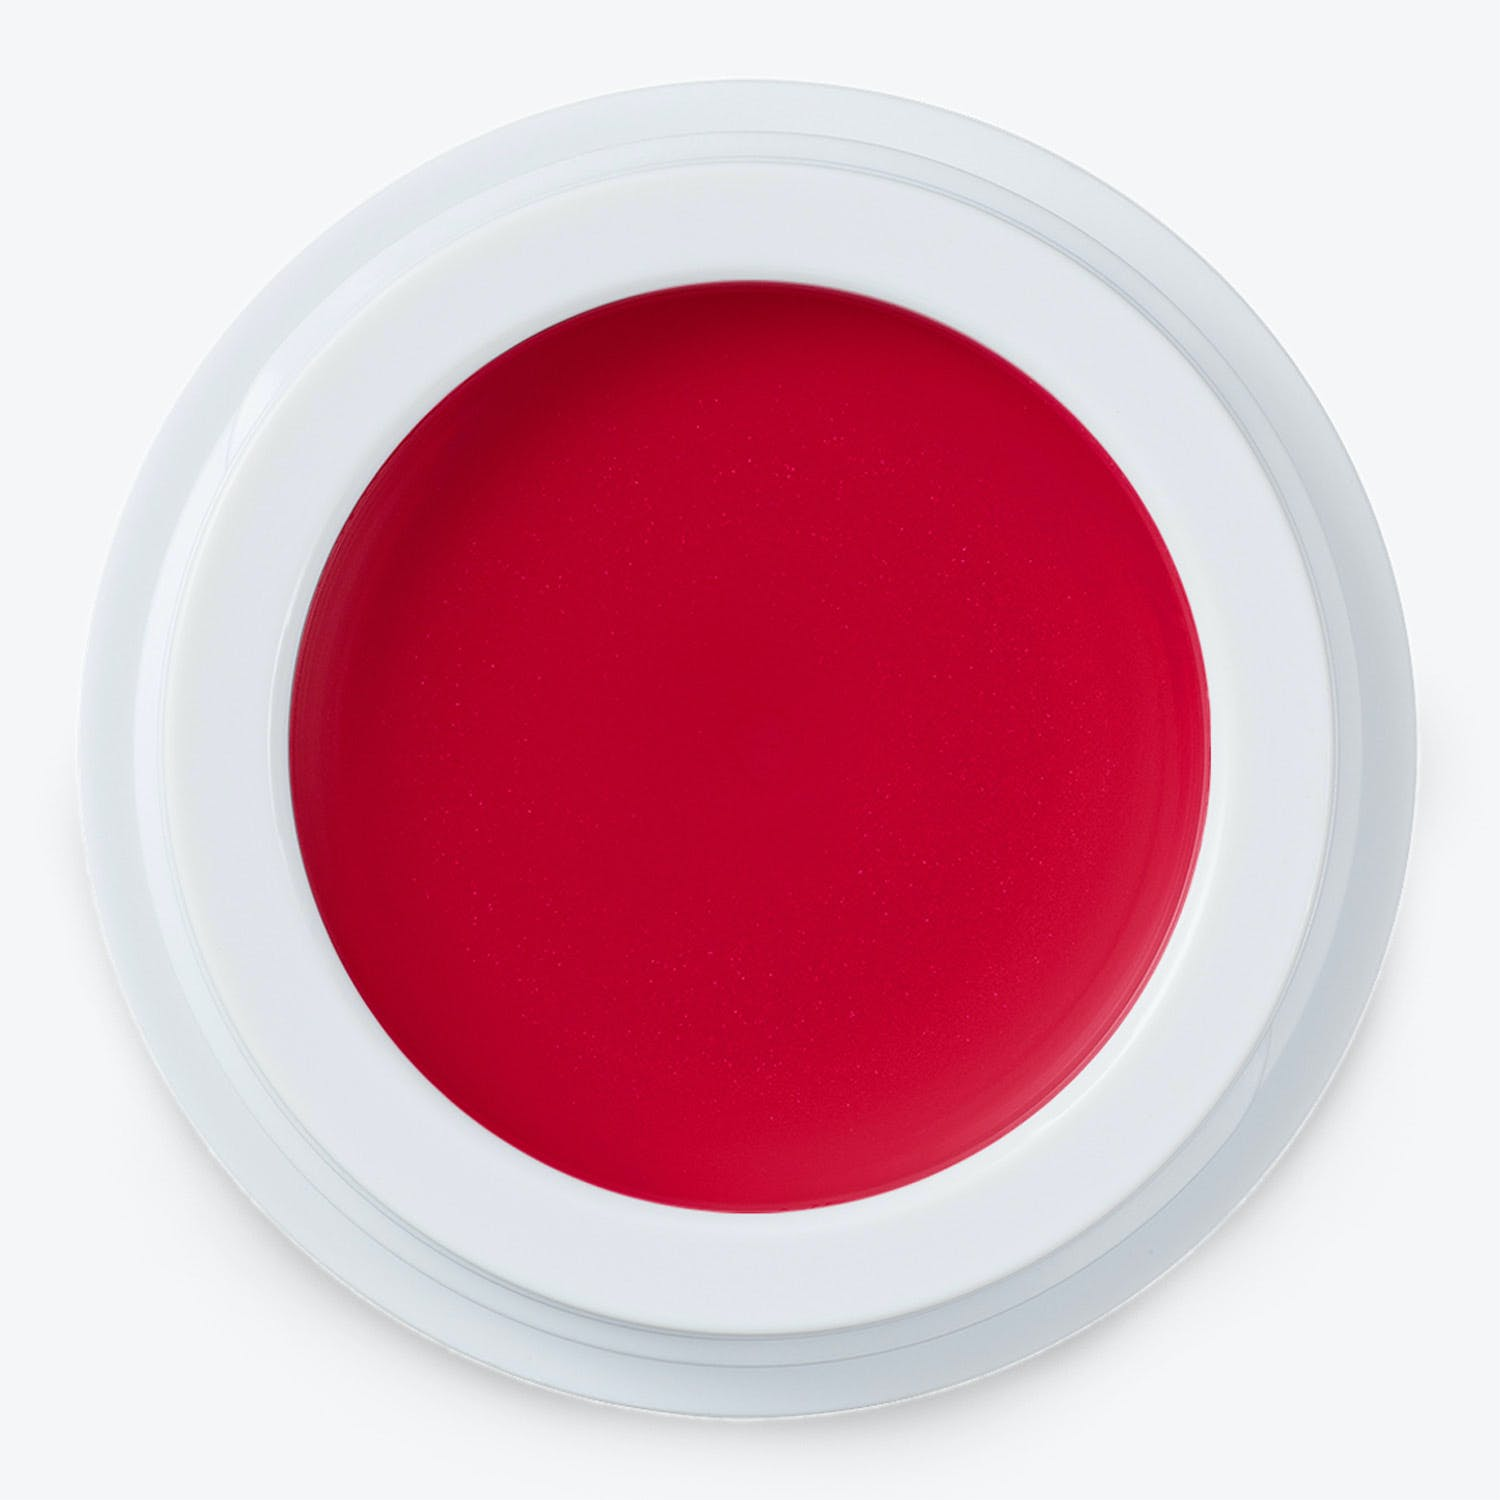 Product Image - Manasi 7 All Over Color Alizarin Deep Classic Red